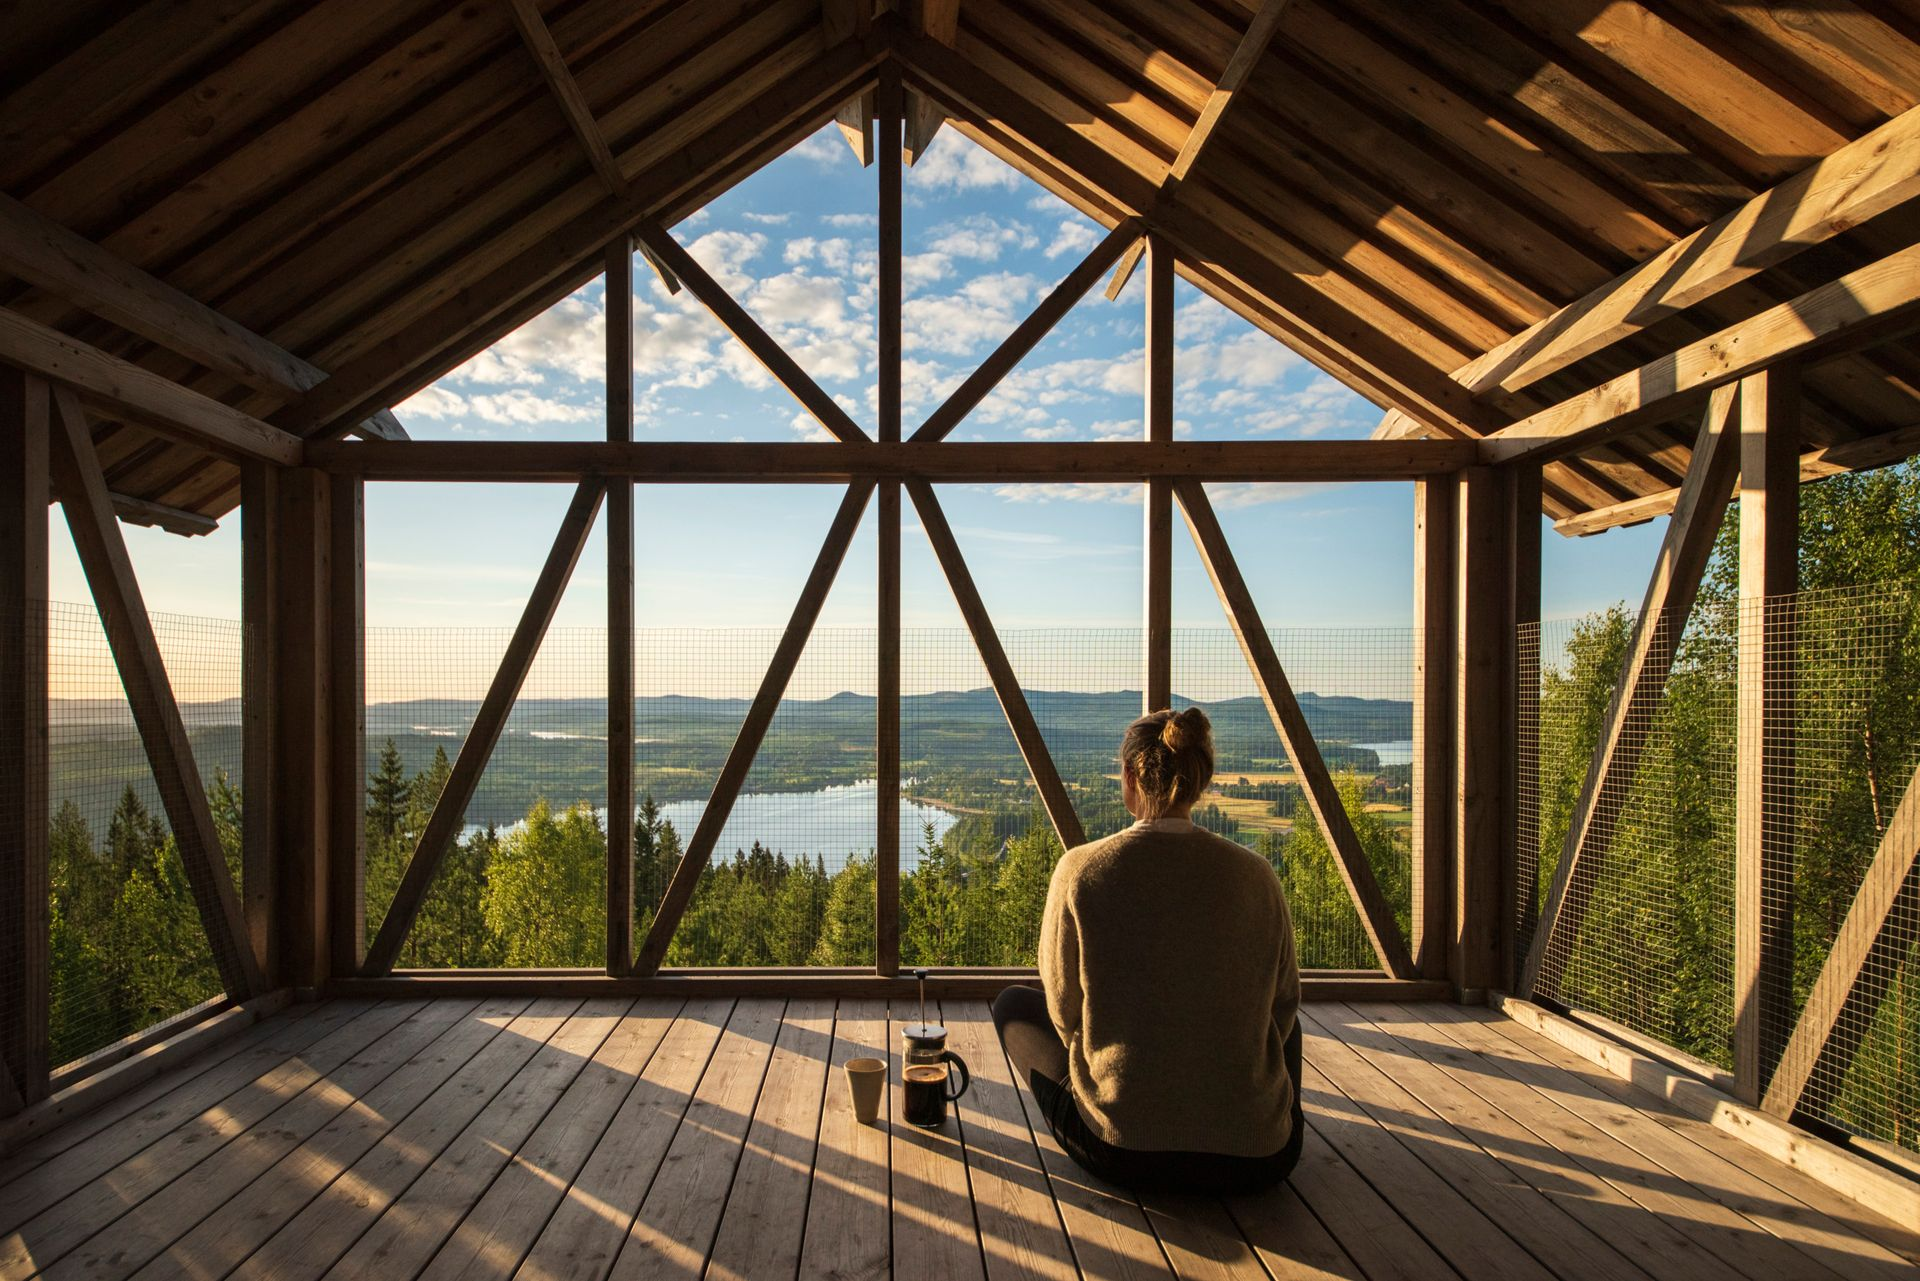 A person sitting inside a wooden construction amongst the treetops a Swedish forrest looking at the view.